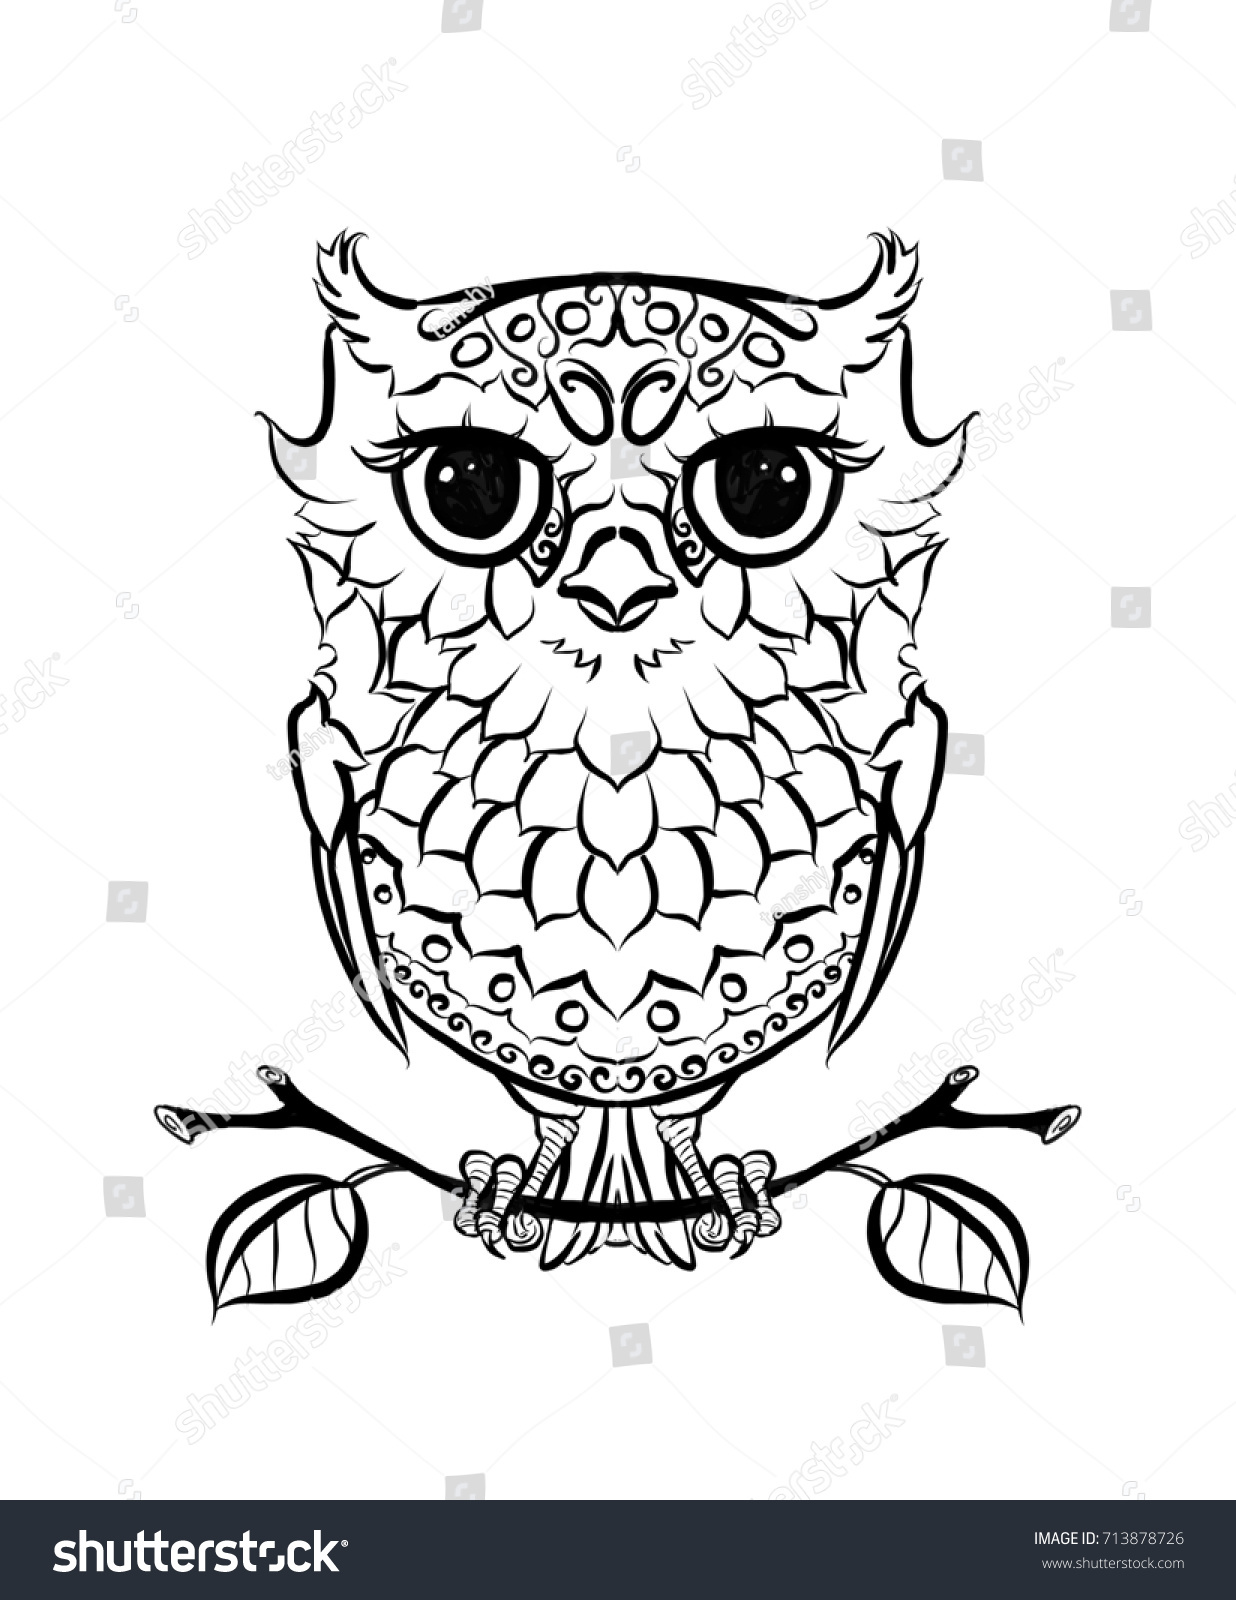 Owl Coloring Antistress Stock Illustration 713878726 - Shutterstock